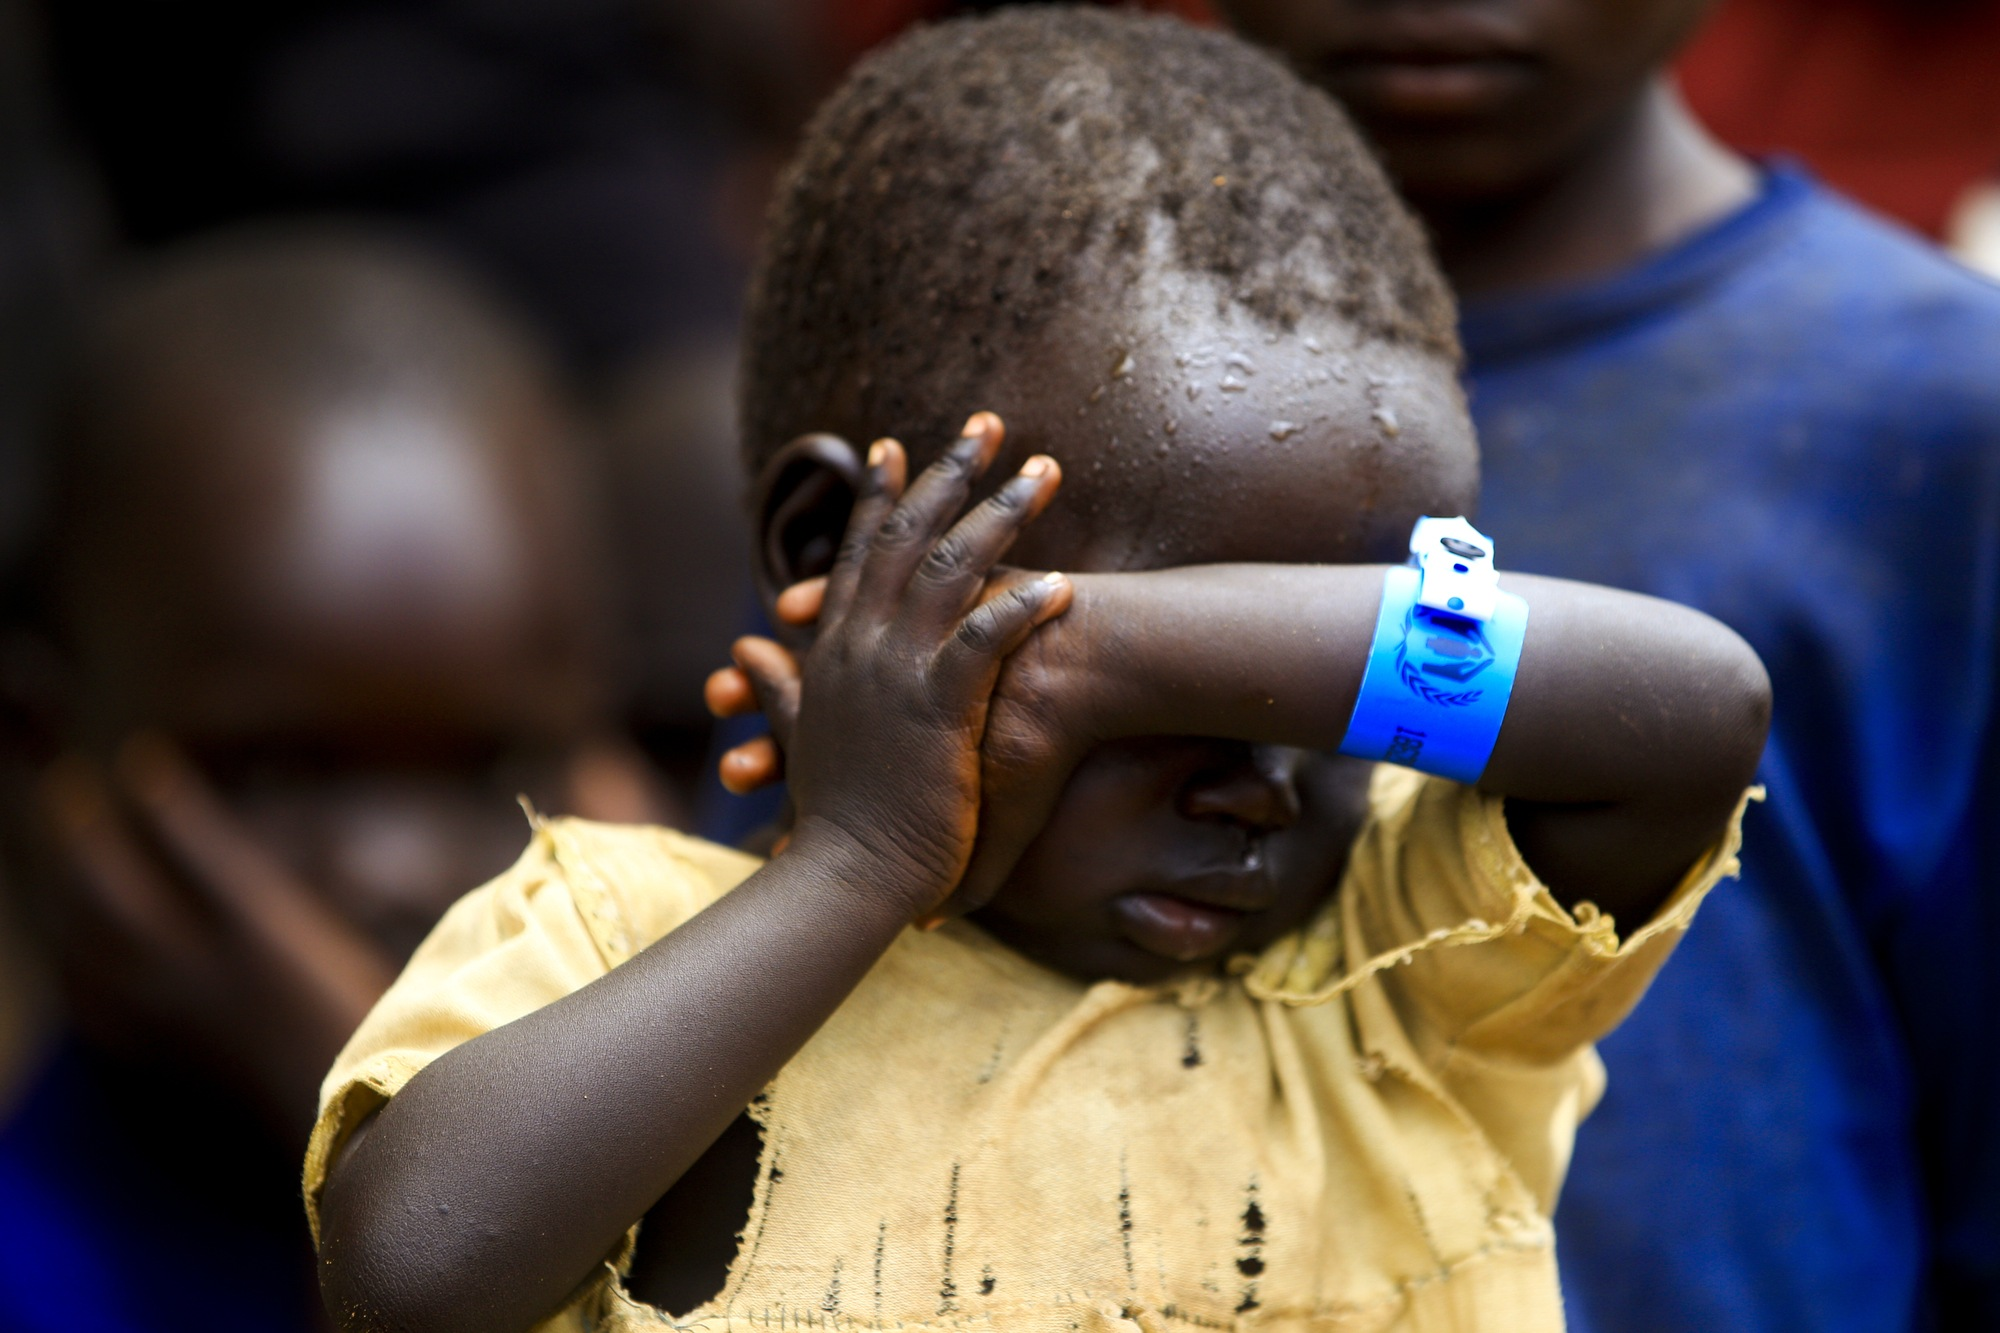 A child from Pajok, South Sudan wearing an arm band signifying his refugee status after his family fled to Uganda to flee the violence.